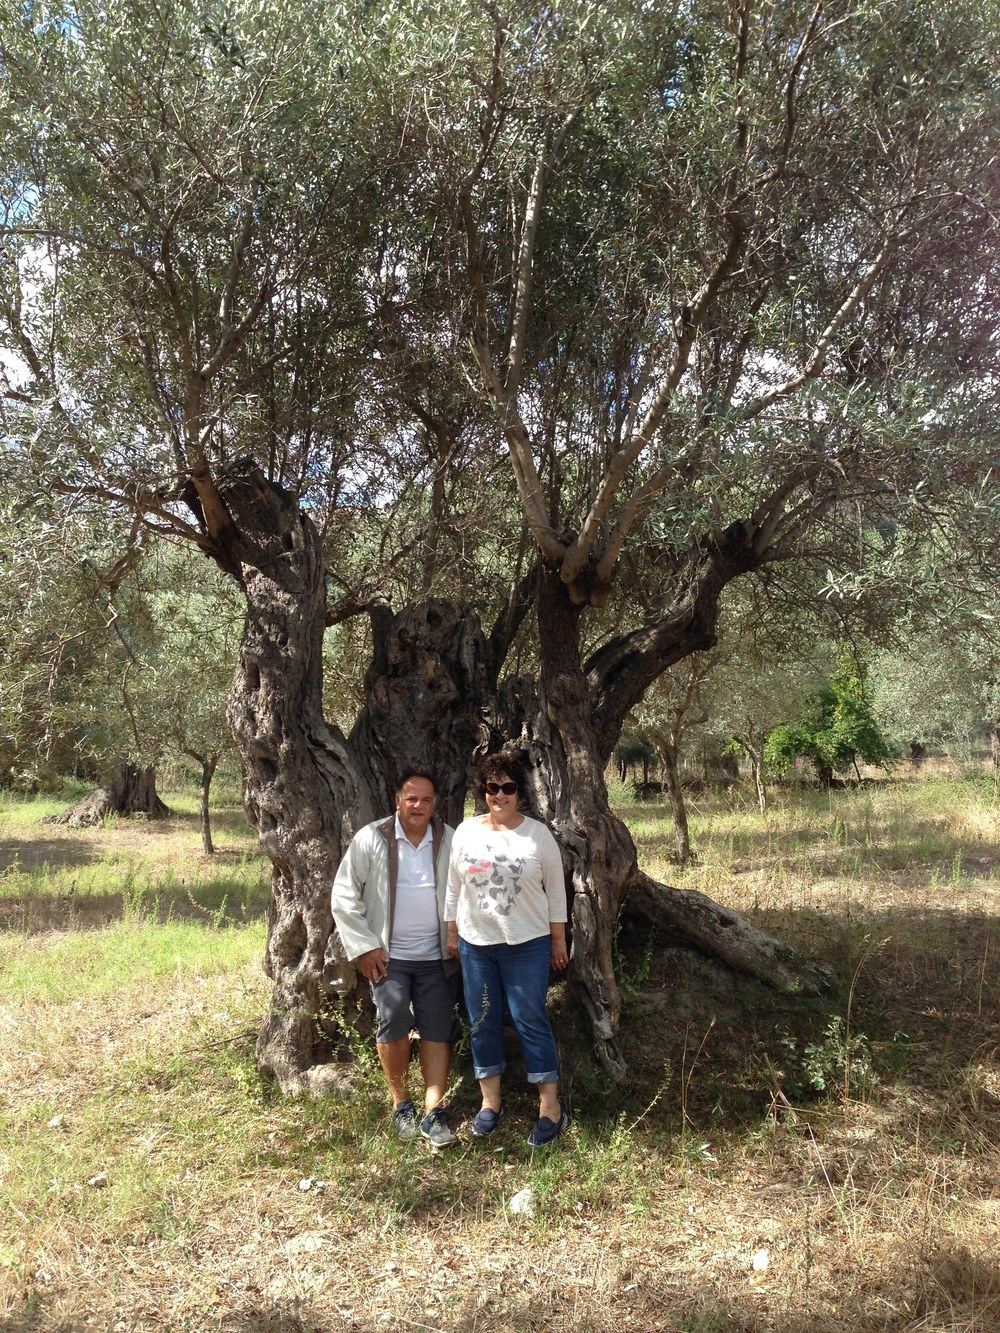 Genine and our Italian friend Vincenzo in front of a 2500 year old olive tree in Melissa, Italy.